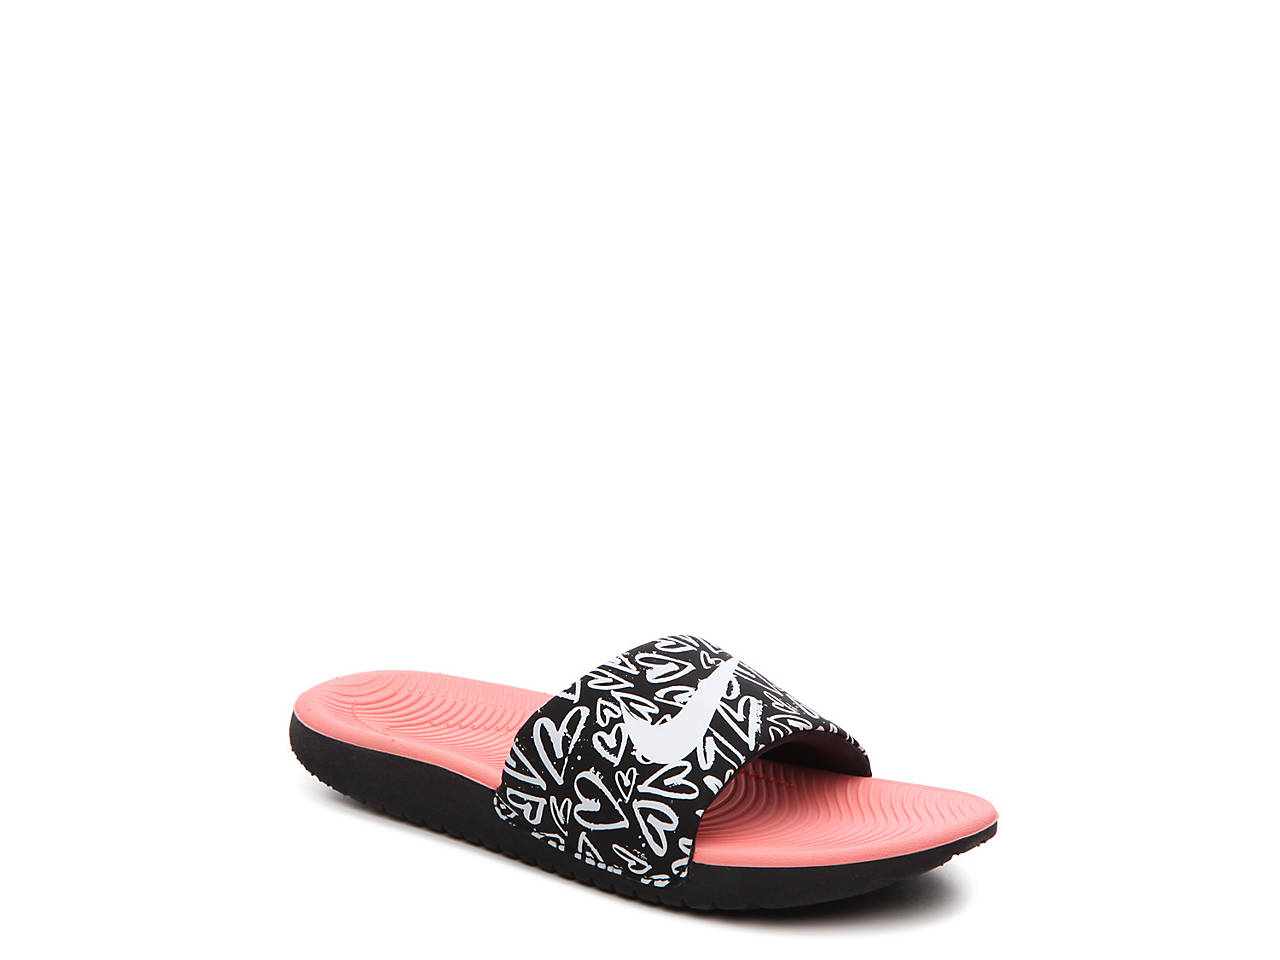 5a4e51bc2f2da6 Nike Kawa Print Toddler   Youth Slide Sandal Kids Shoes